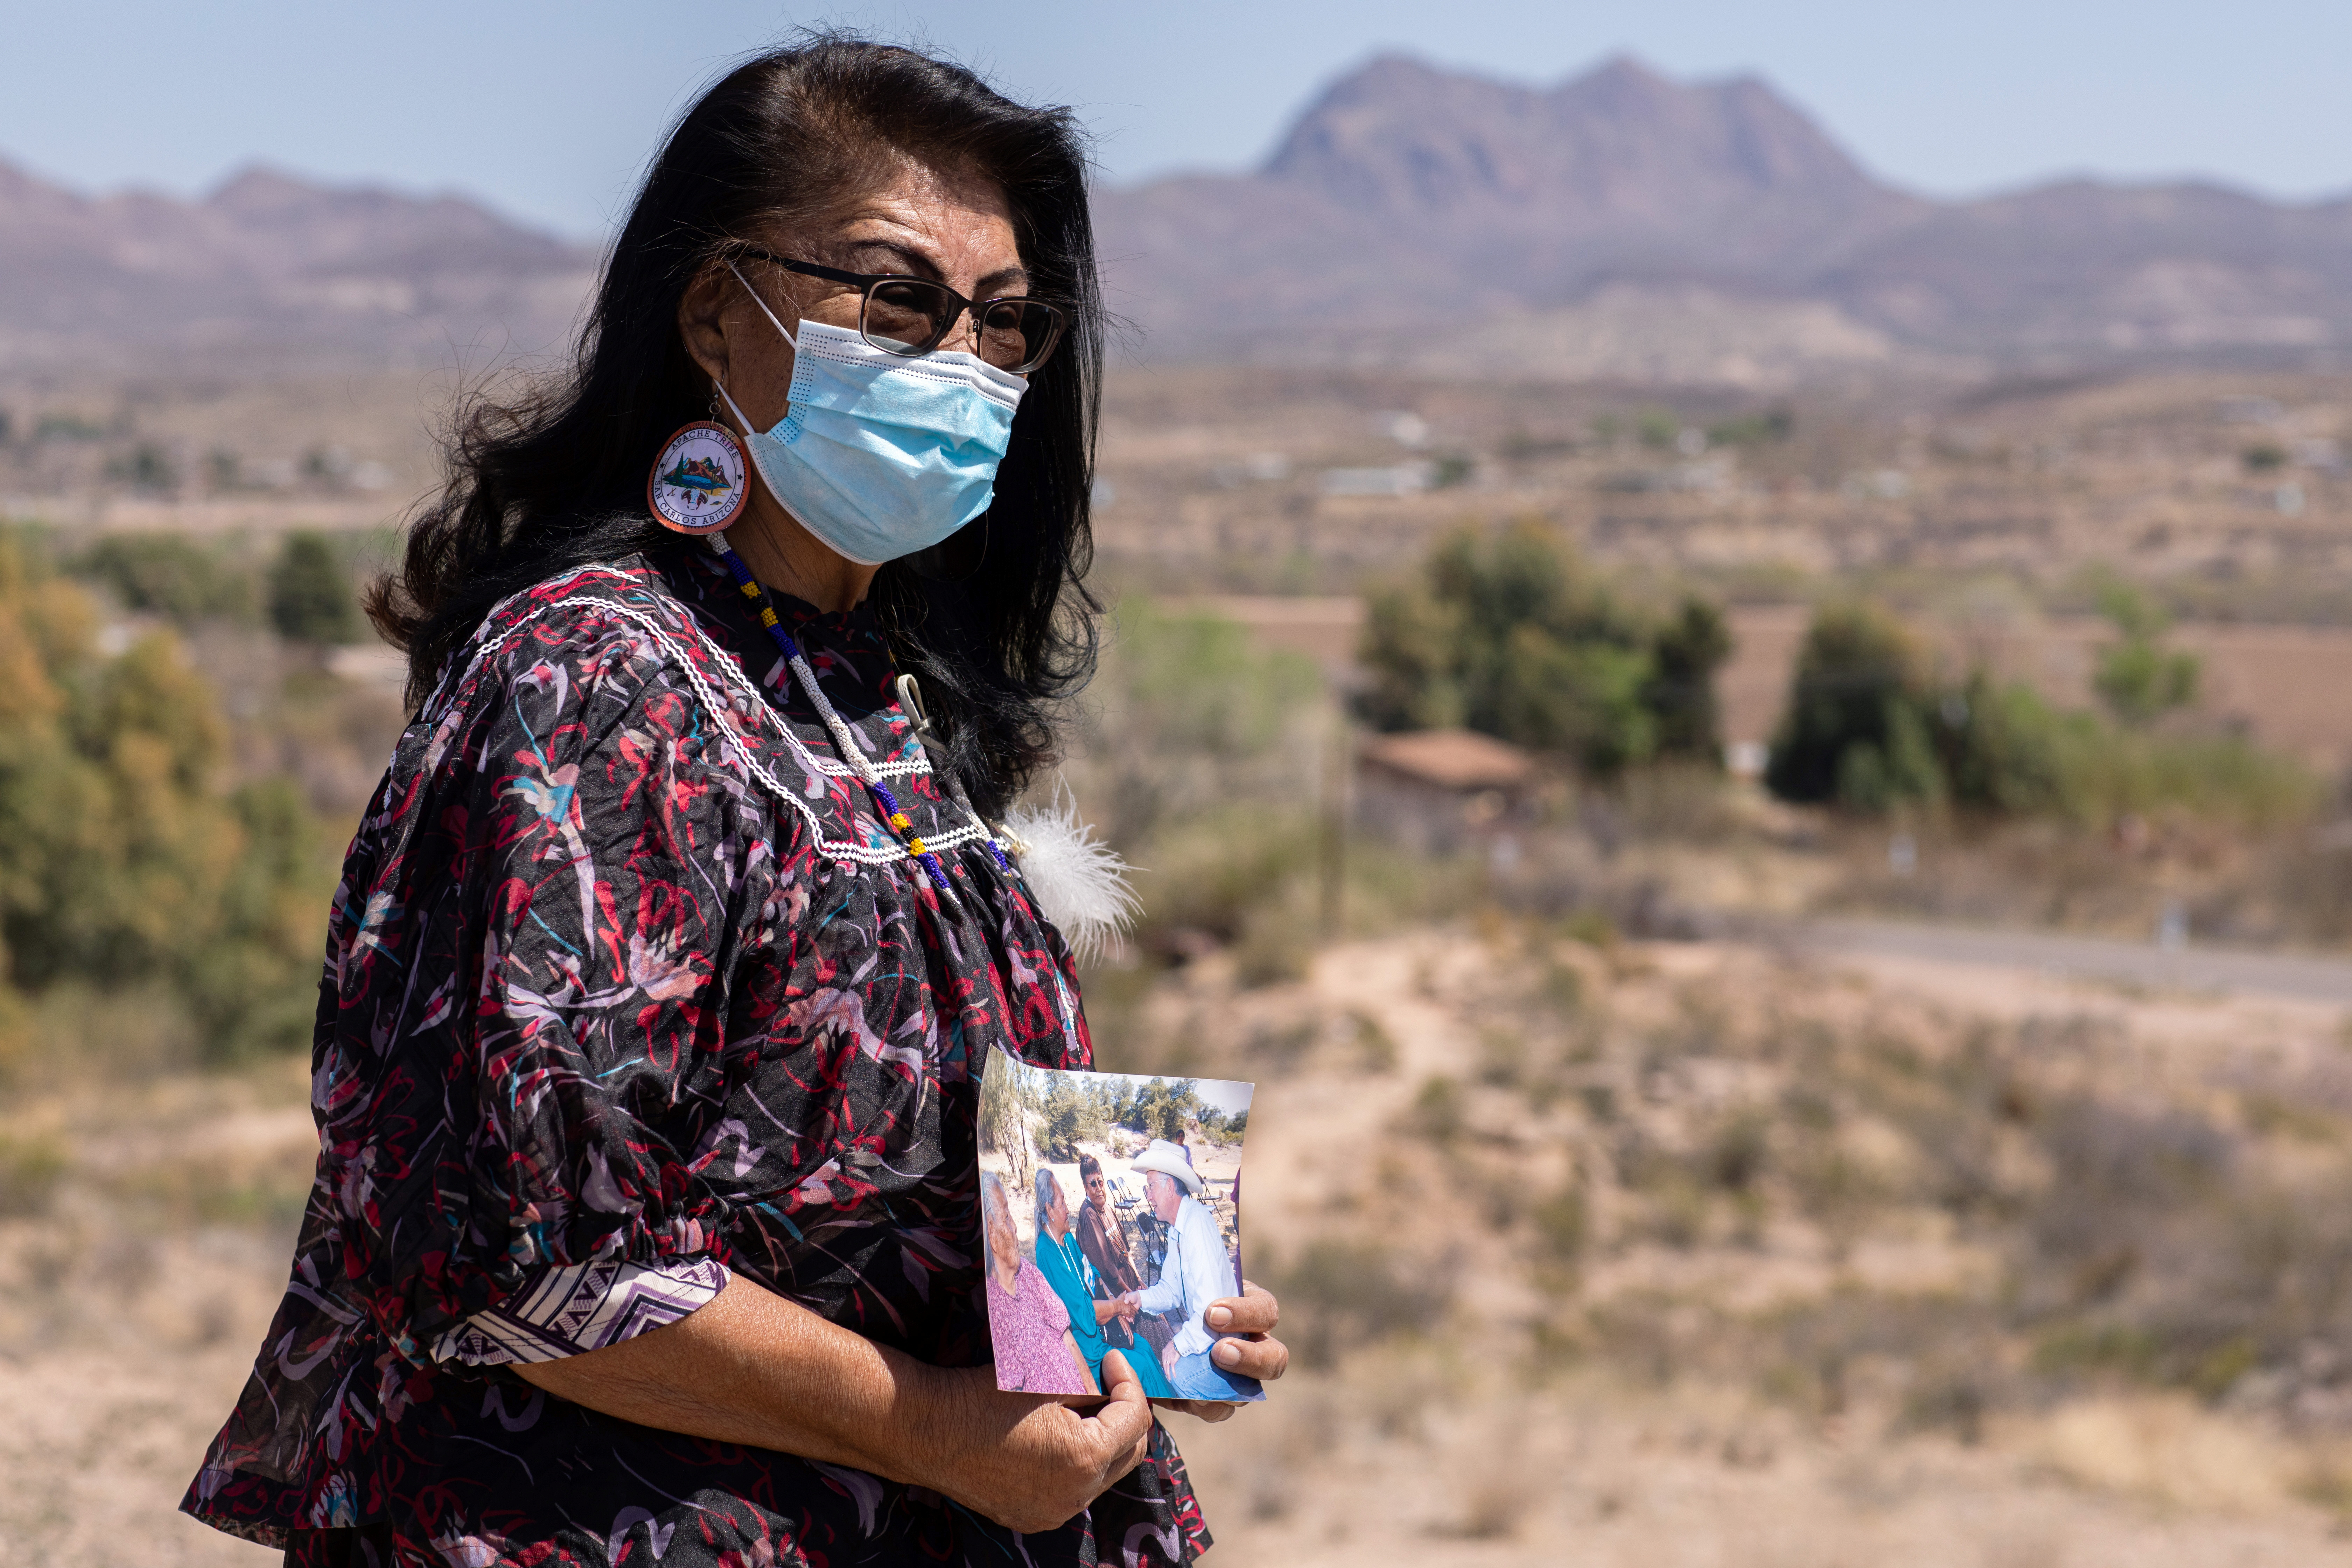 Sandra Rambler, a San Carlos Apache tribal elder, holds a photo of her mother talking with former Secretary of the Interior Ken Salazar during his visit to Oak Flat in 2009, in San Carlos, Arizona, U.S., March 31, 2021.